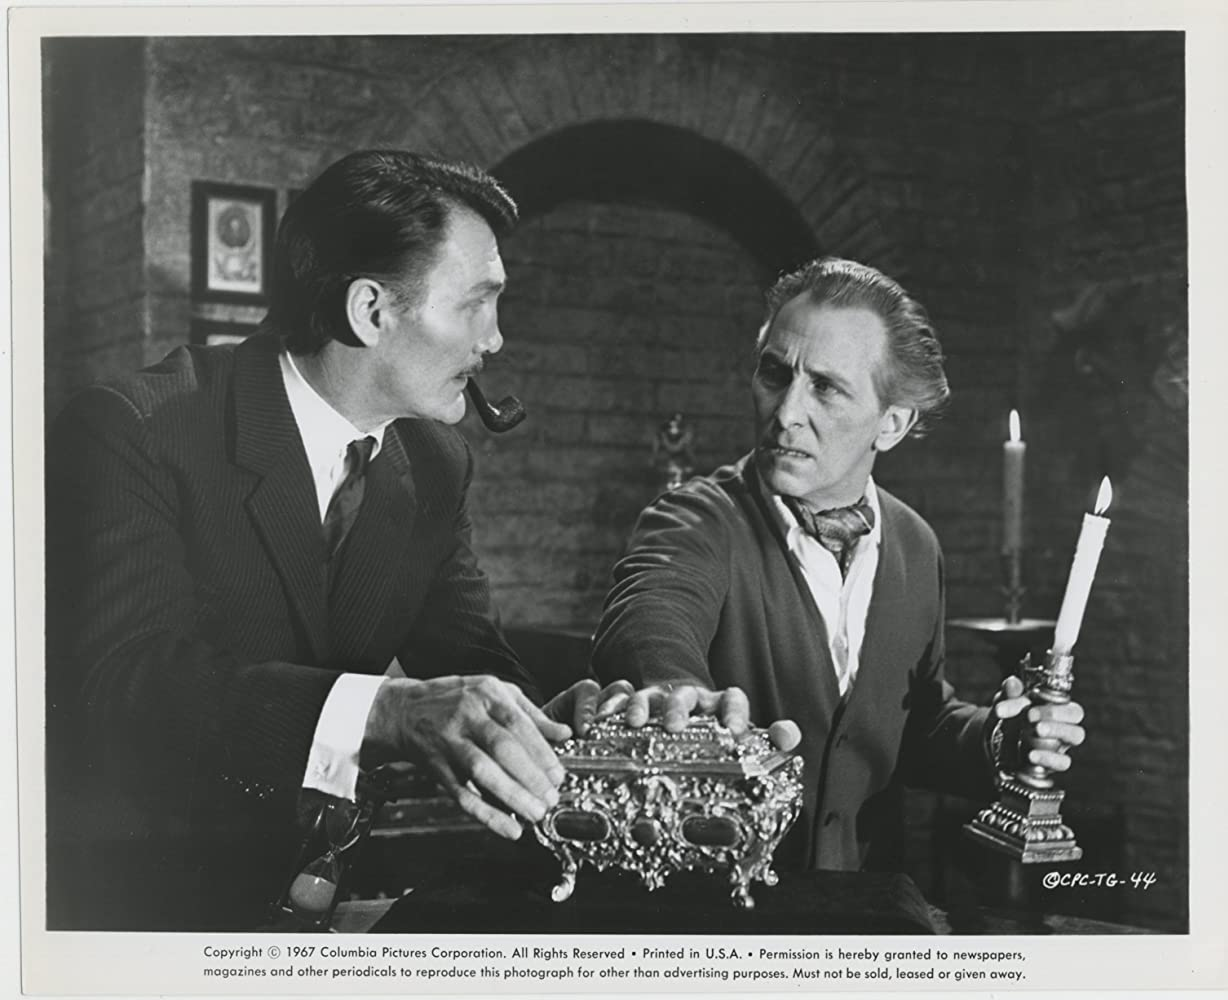 Peter Cushing and Jack Palance in Torture Garden (1967)